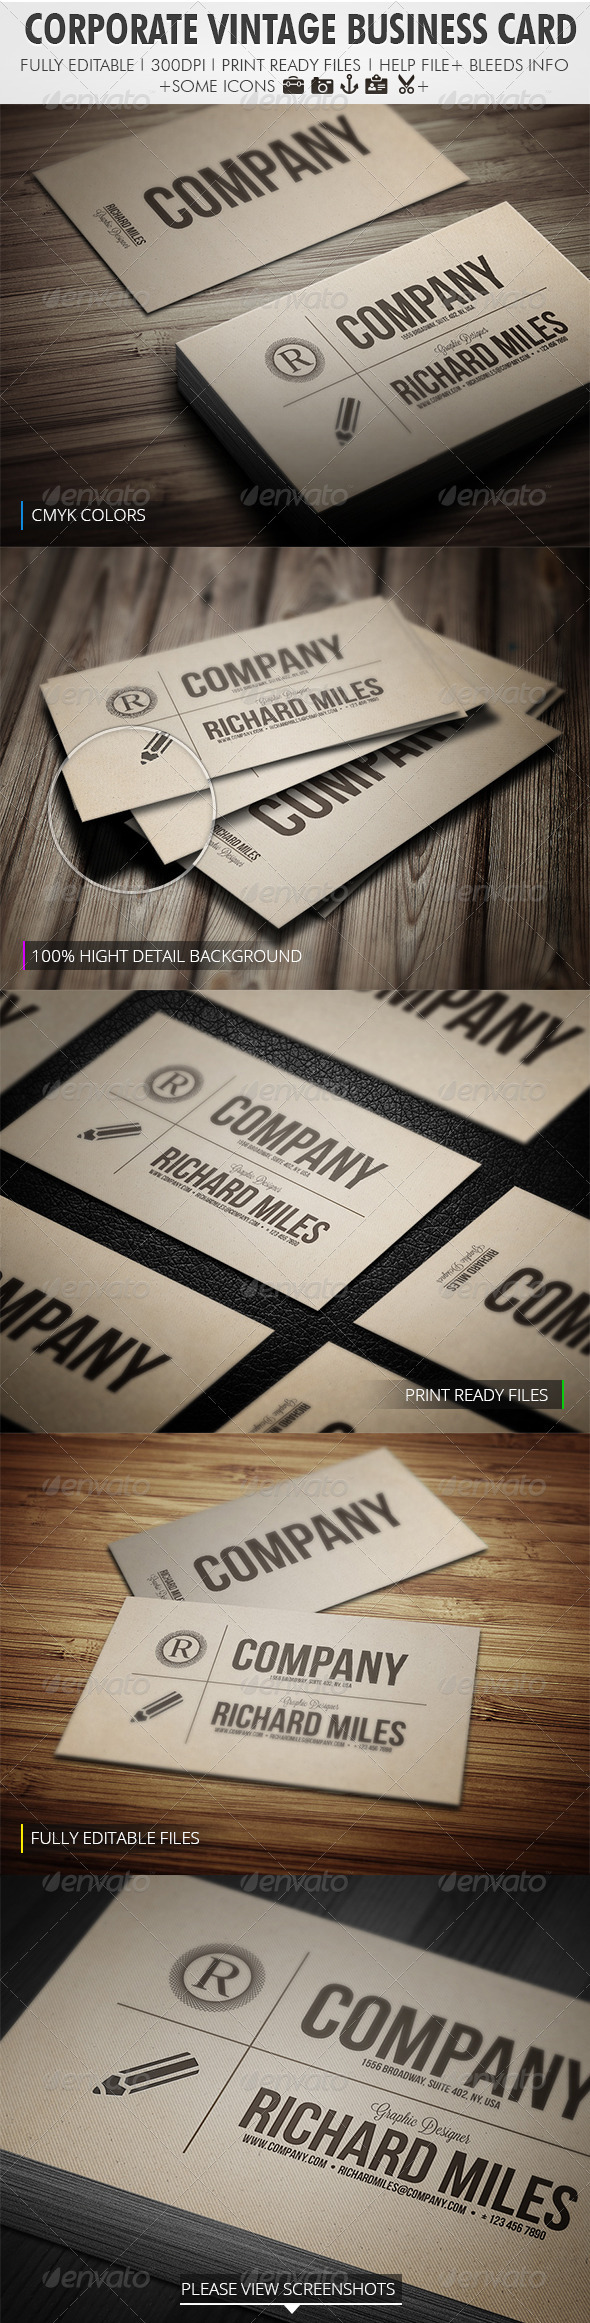 Corporate Vintage Business Card - Retro/Vintage Business Cards